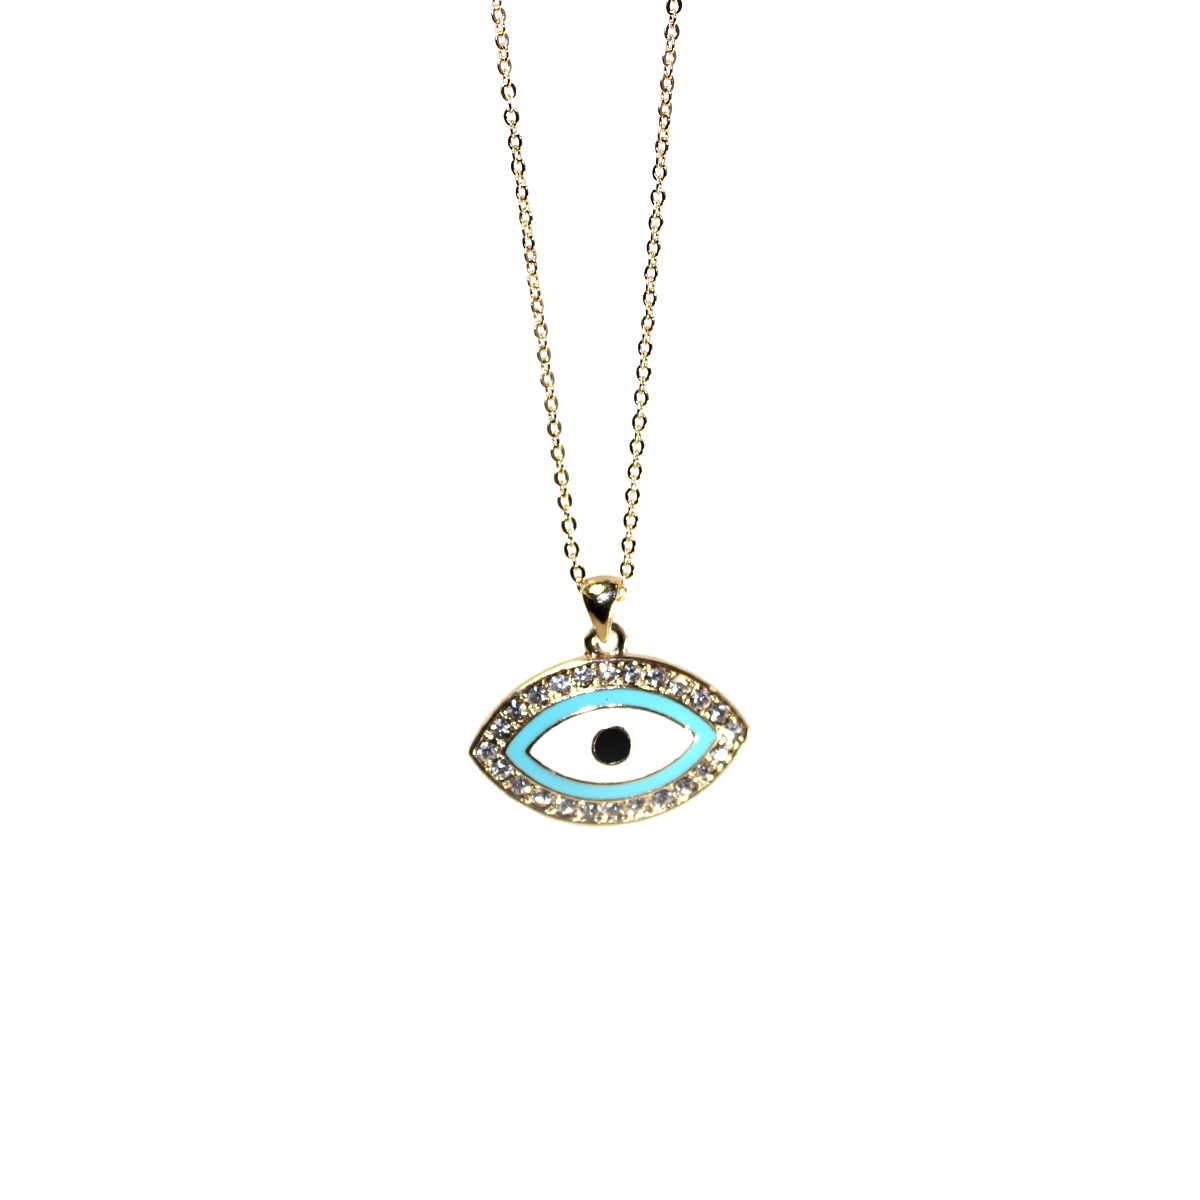 serenaleena evil eye necklace new style great price